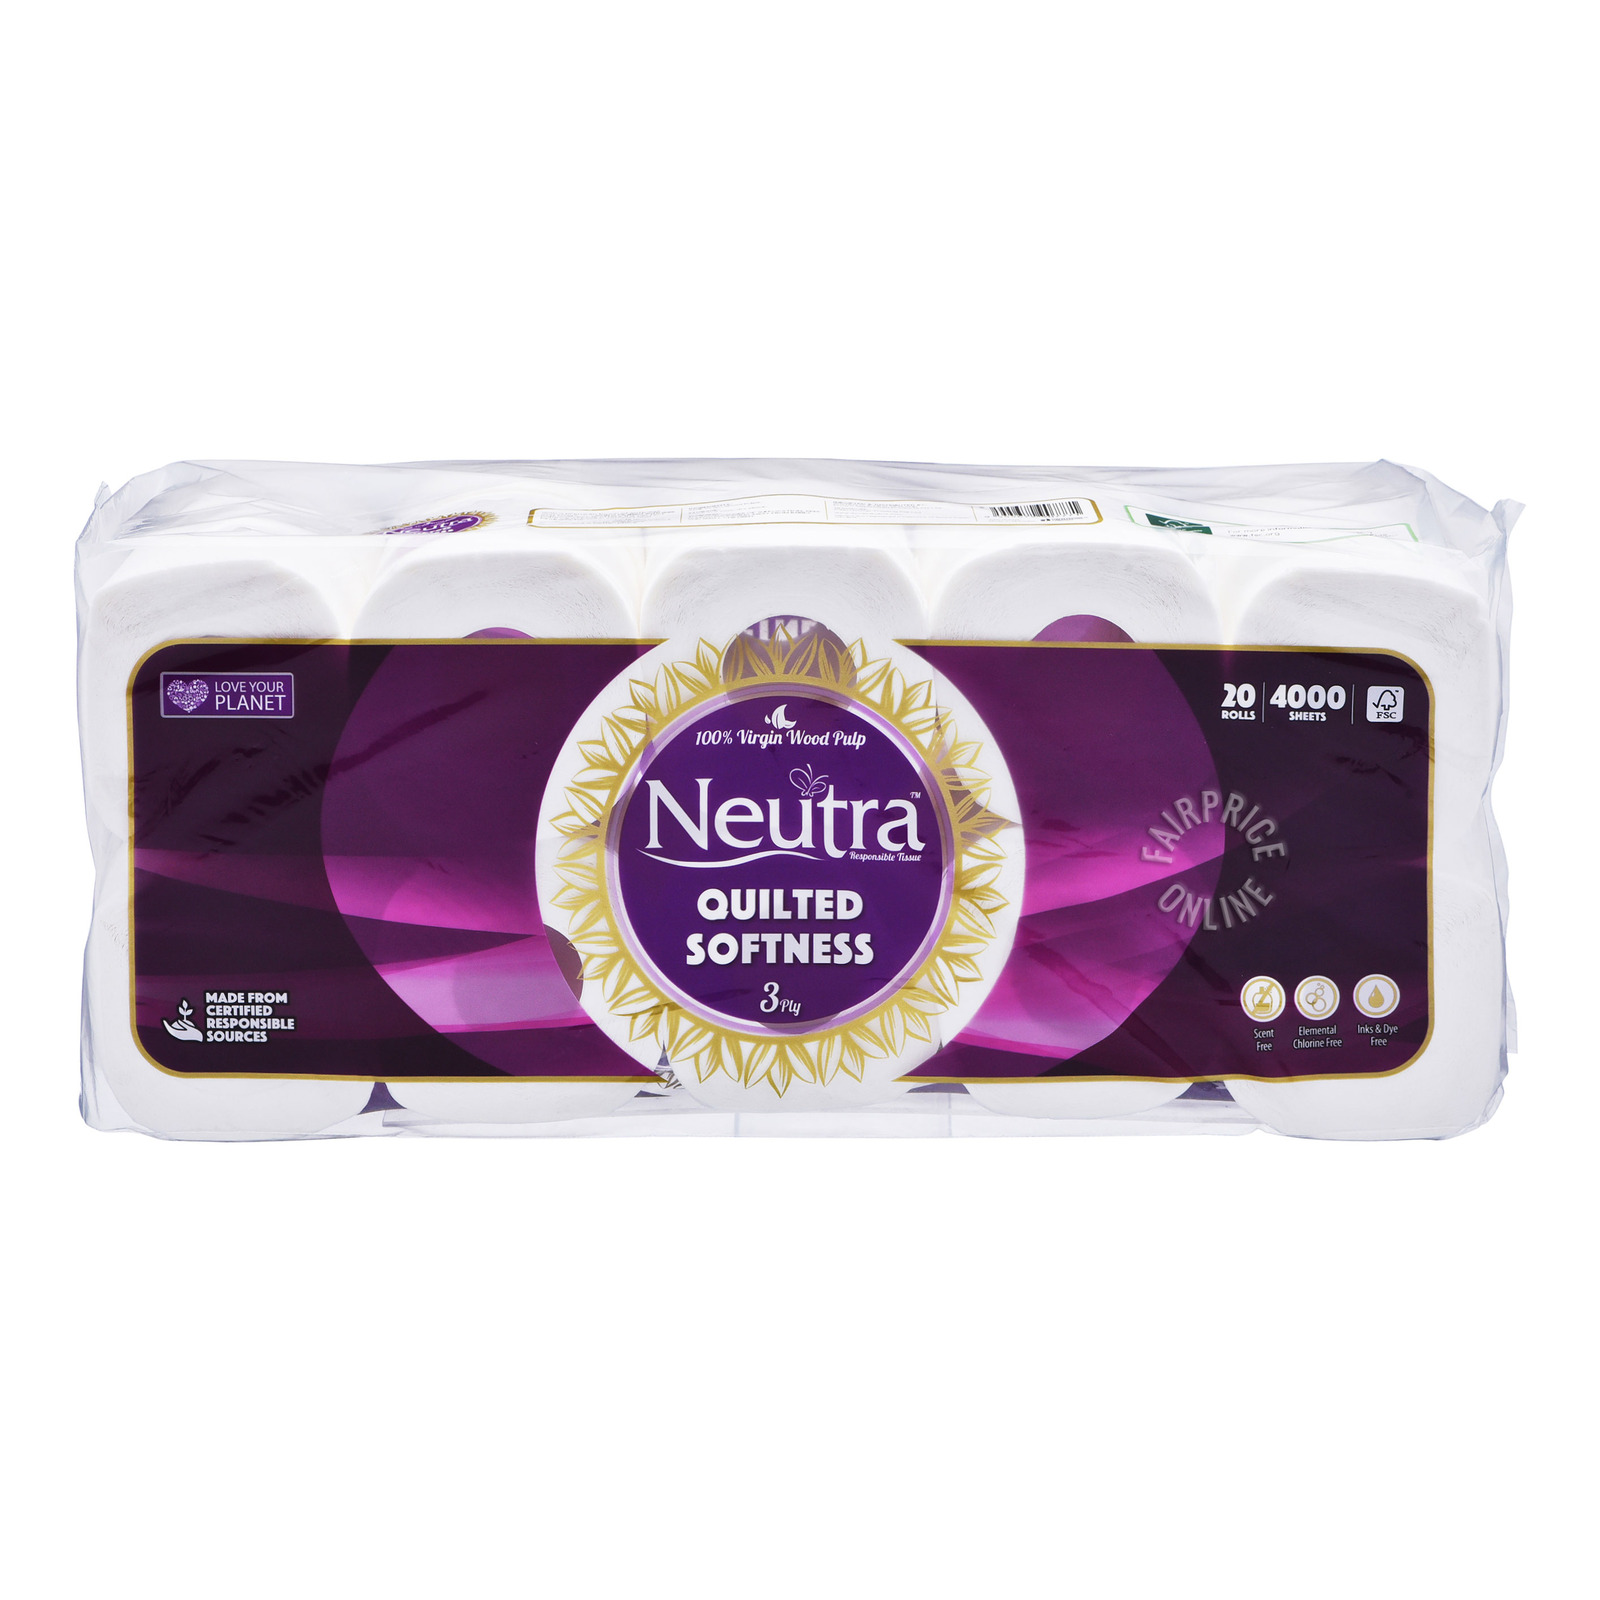 Neutra Toilet Tissue + Free Pocket Handy Tissue